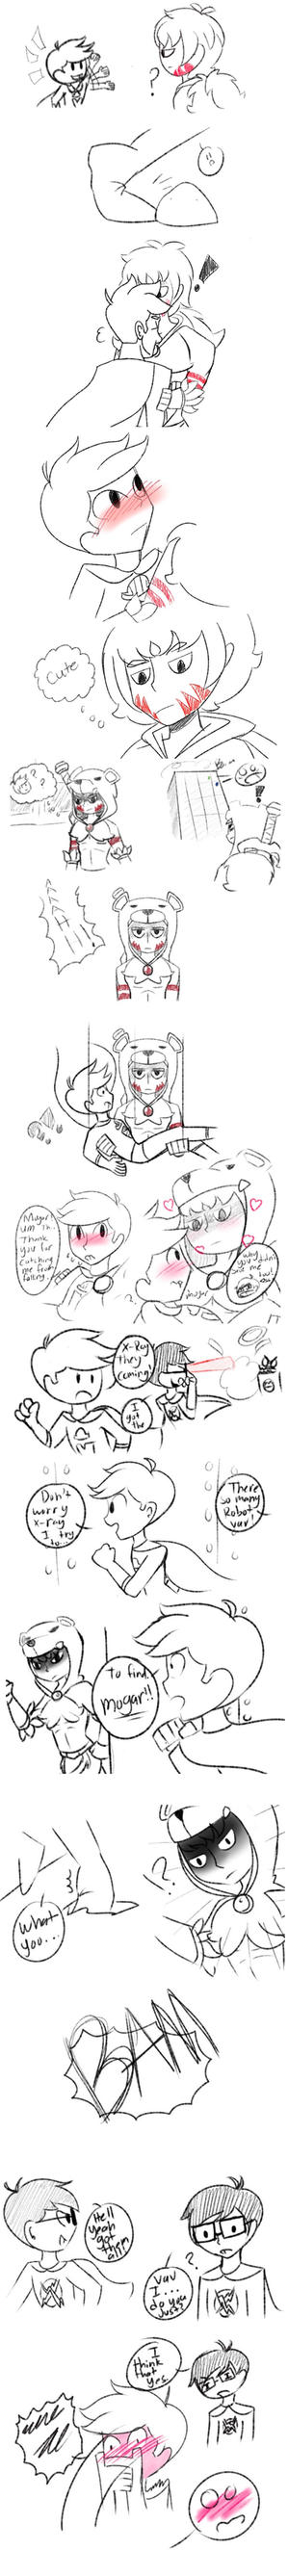 Tumblr ask 1 by Bratcole